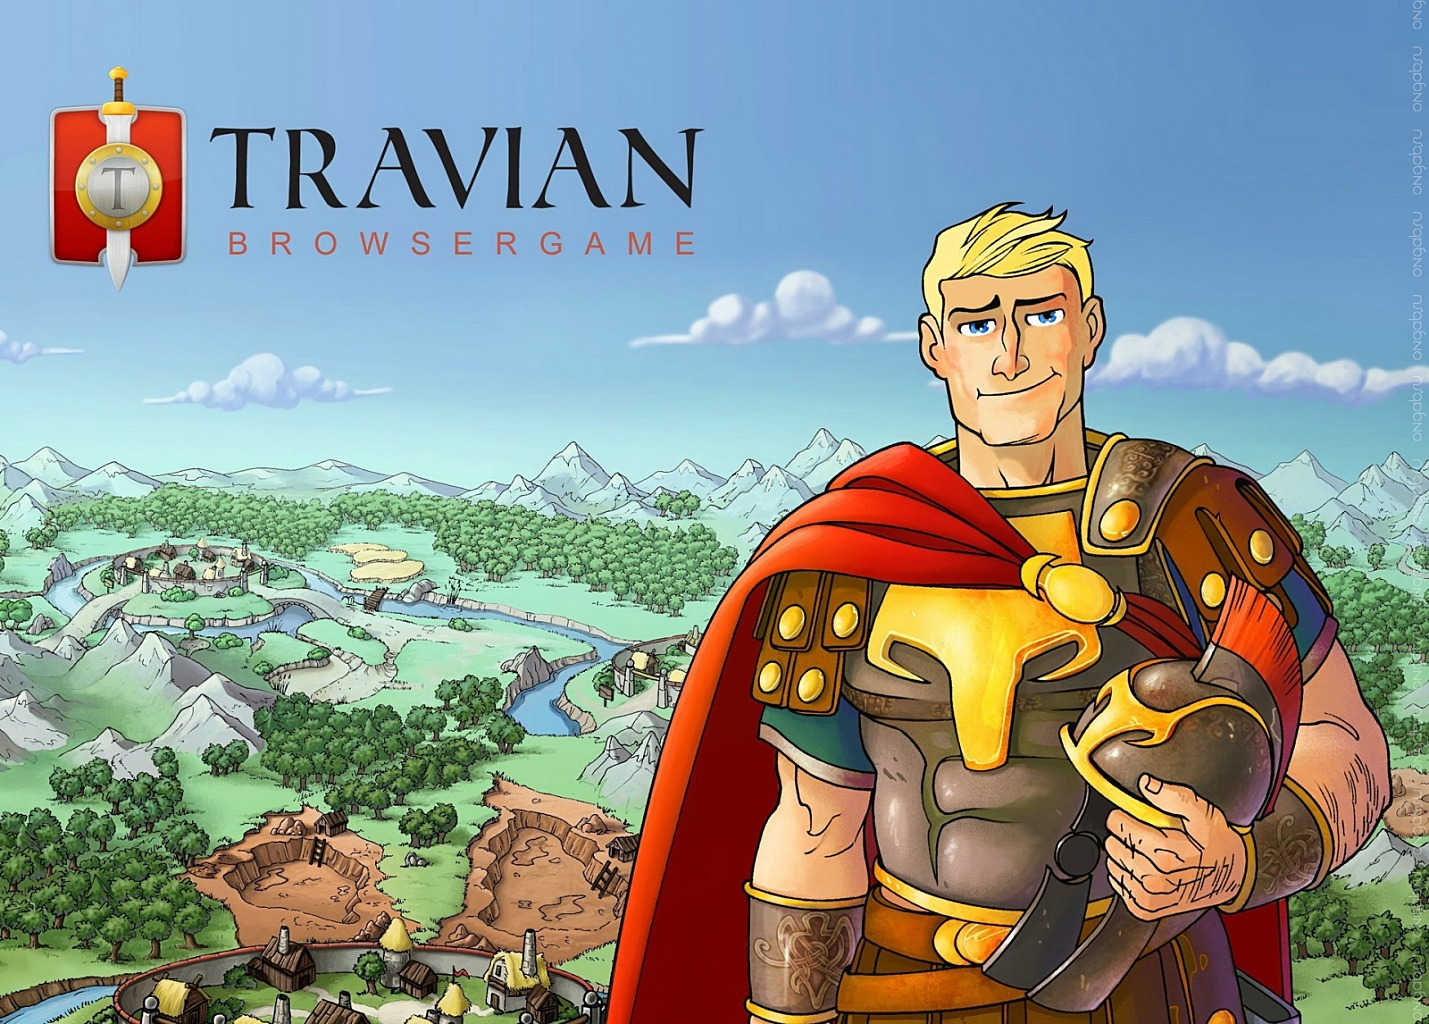 Игра Travian - новости, отзывы, информация ...: ongab.ru/games/travian